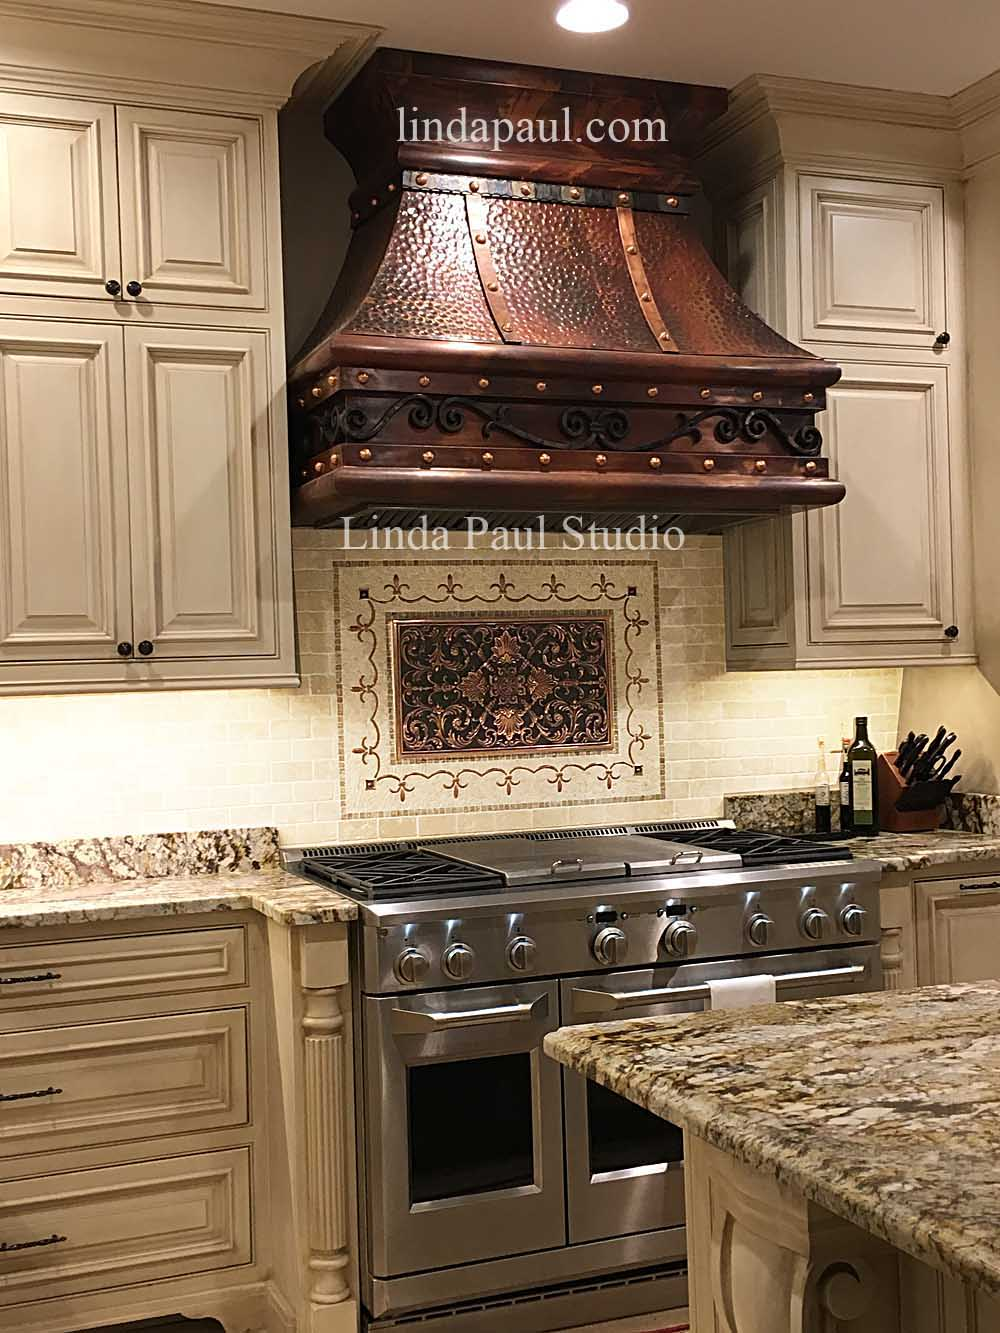 Uncategorized Copper Kitchen Backsplash Ideas kitchen backsplash ideas gallery of tile pictures ravenna copper medallion and hood